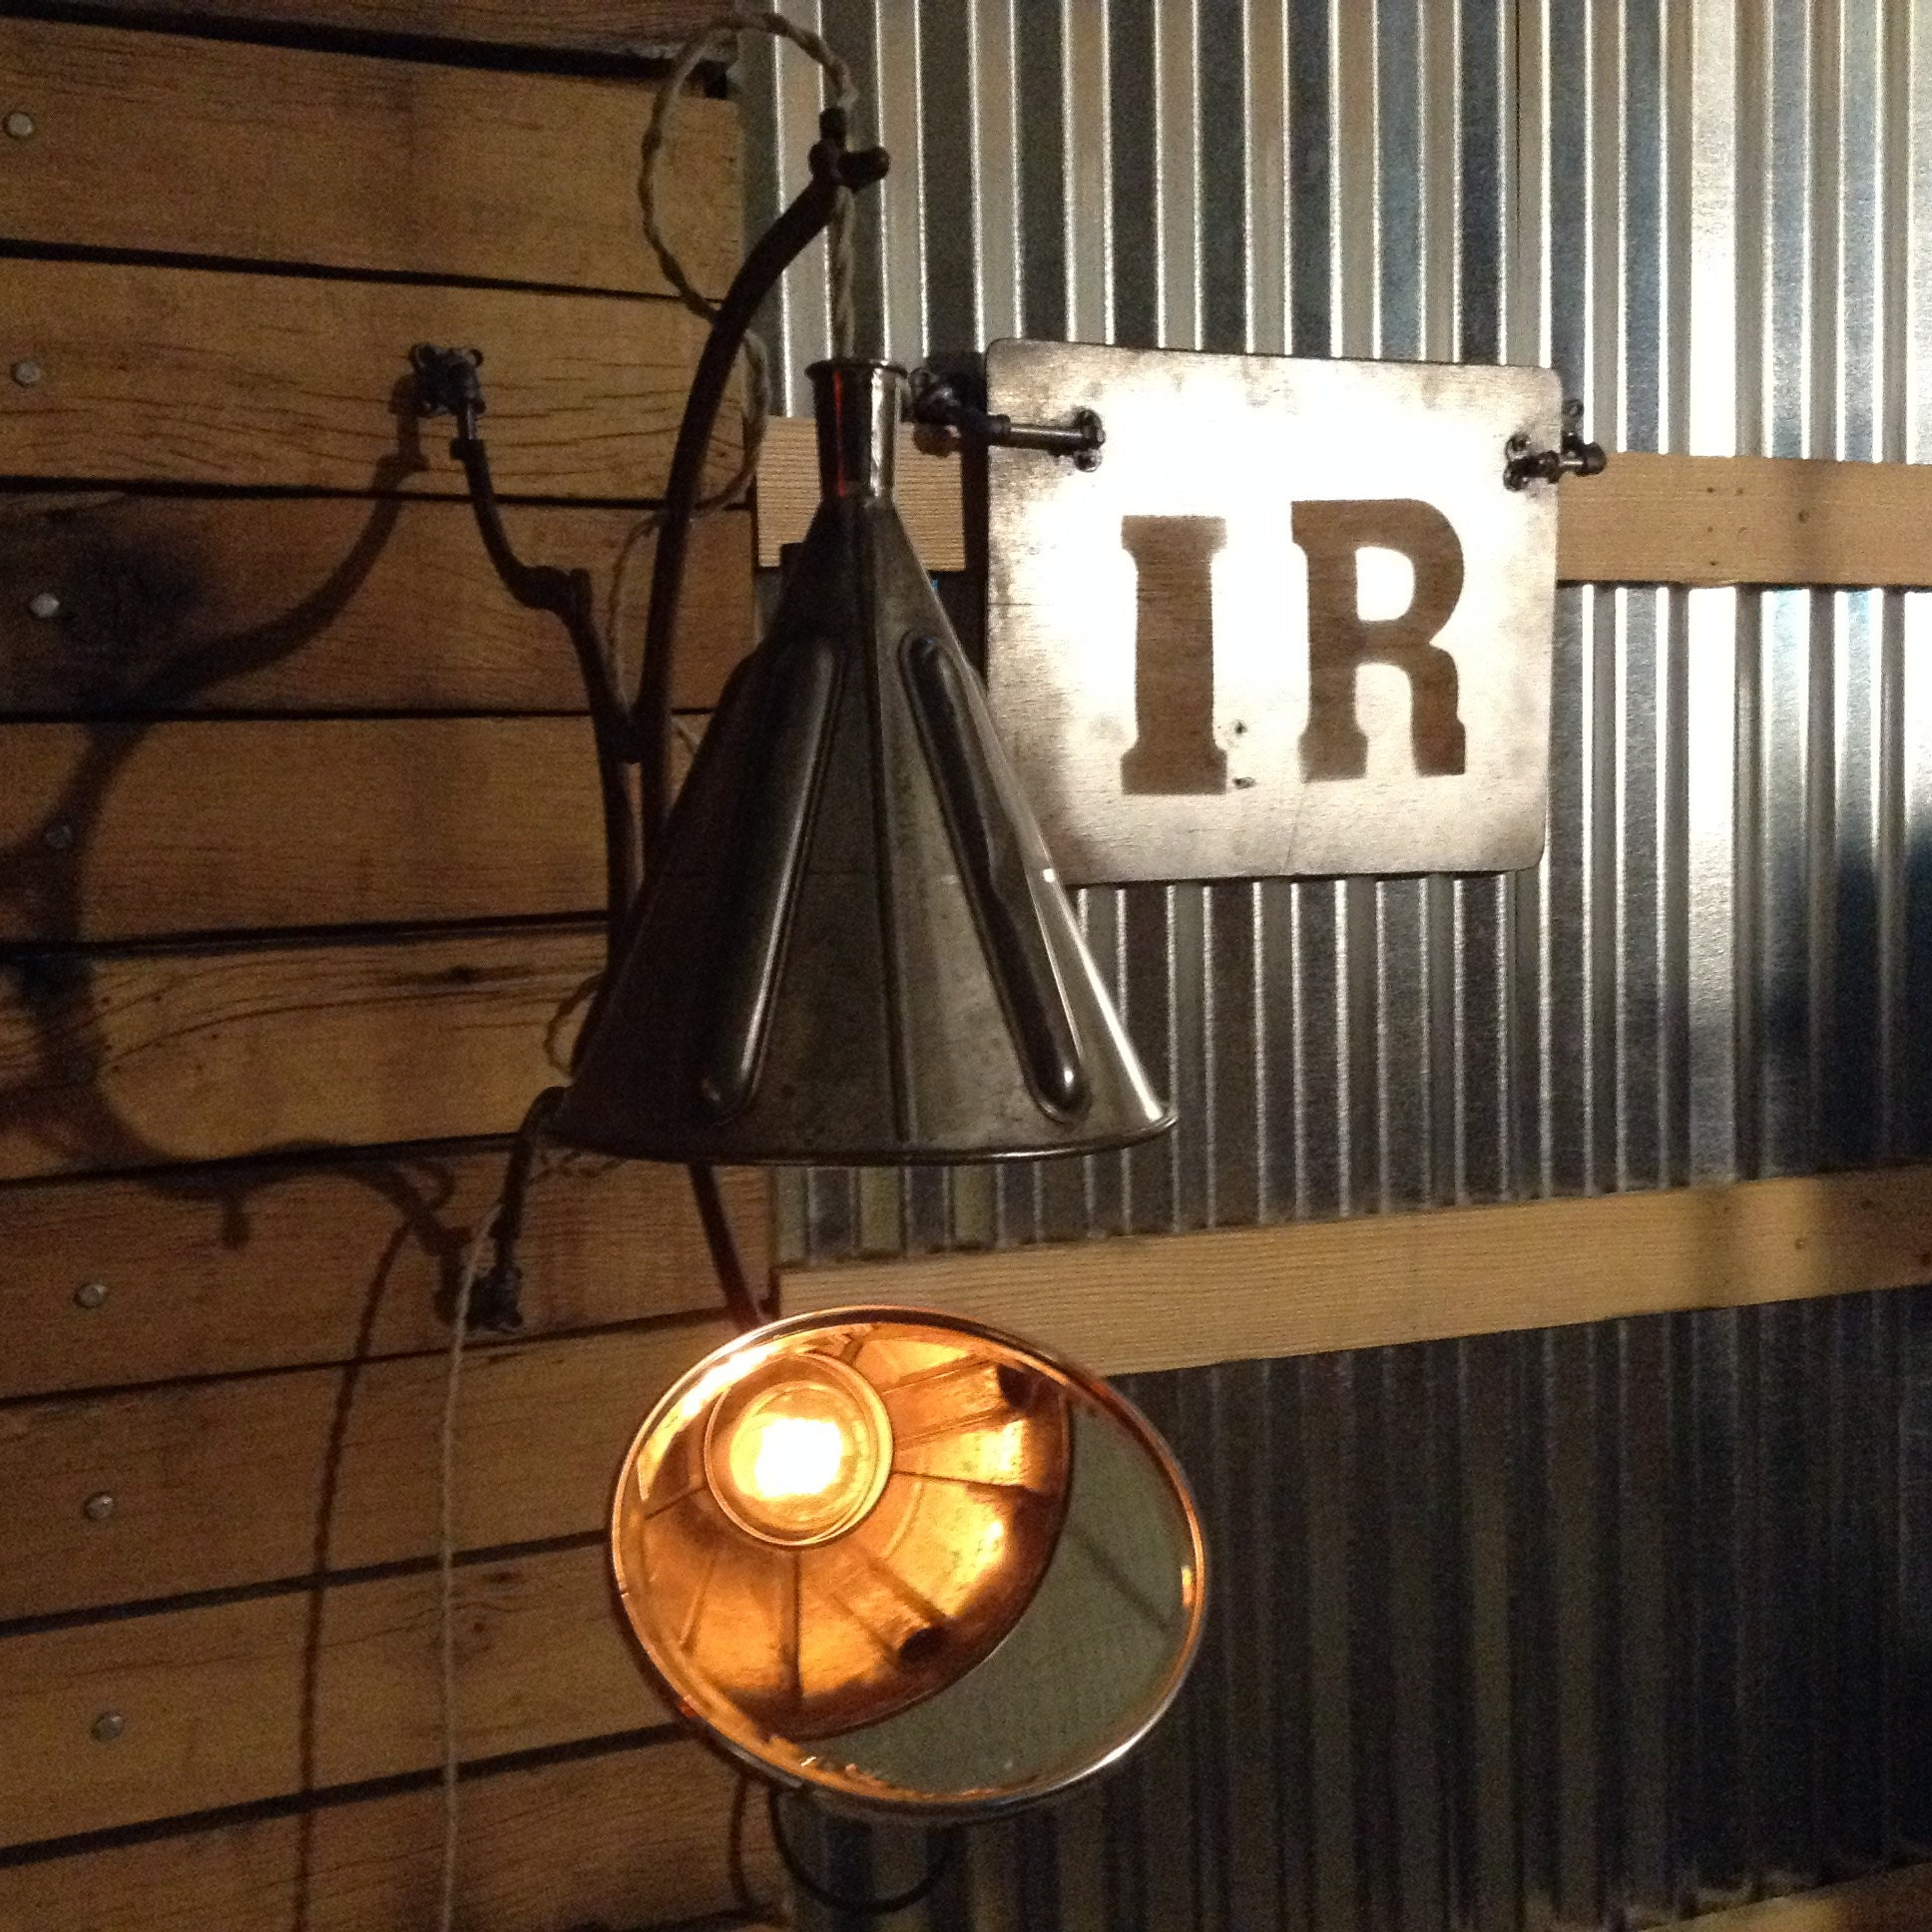 Skyrim Wall Sconces Not Working: Pulley Wall Mount Light Industrial Wall Sconce Pendant